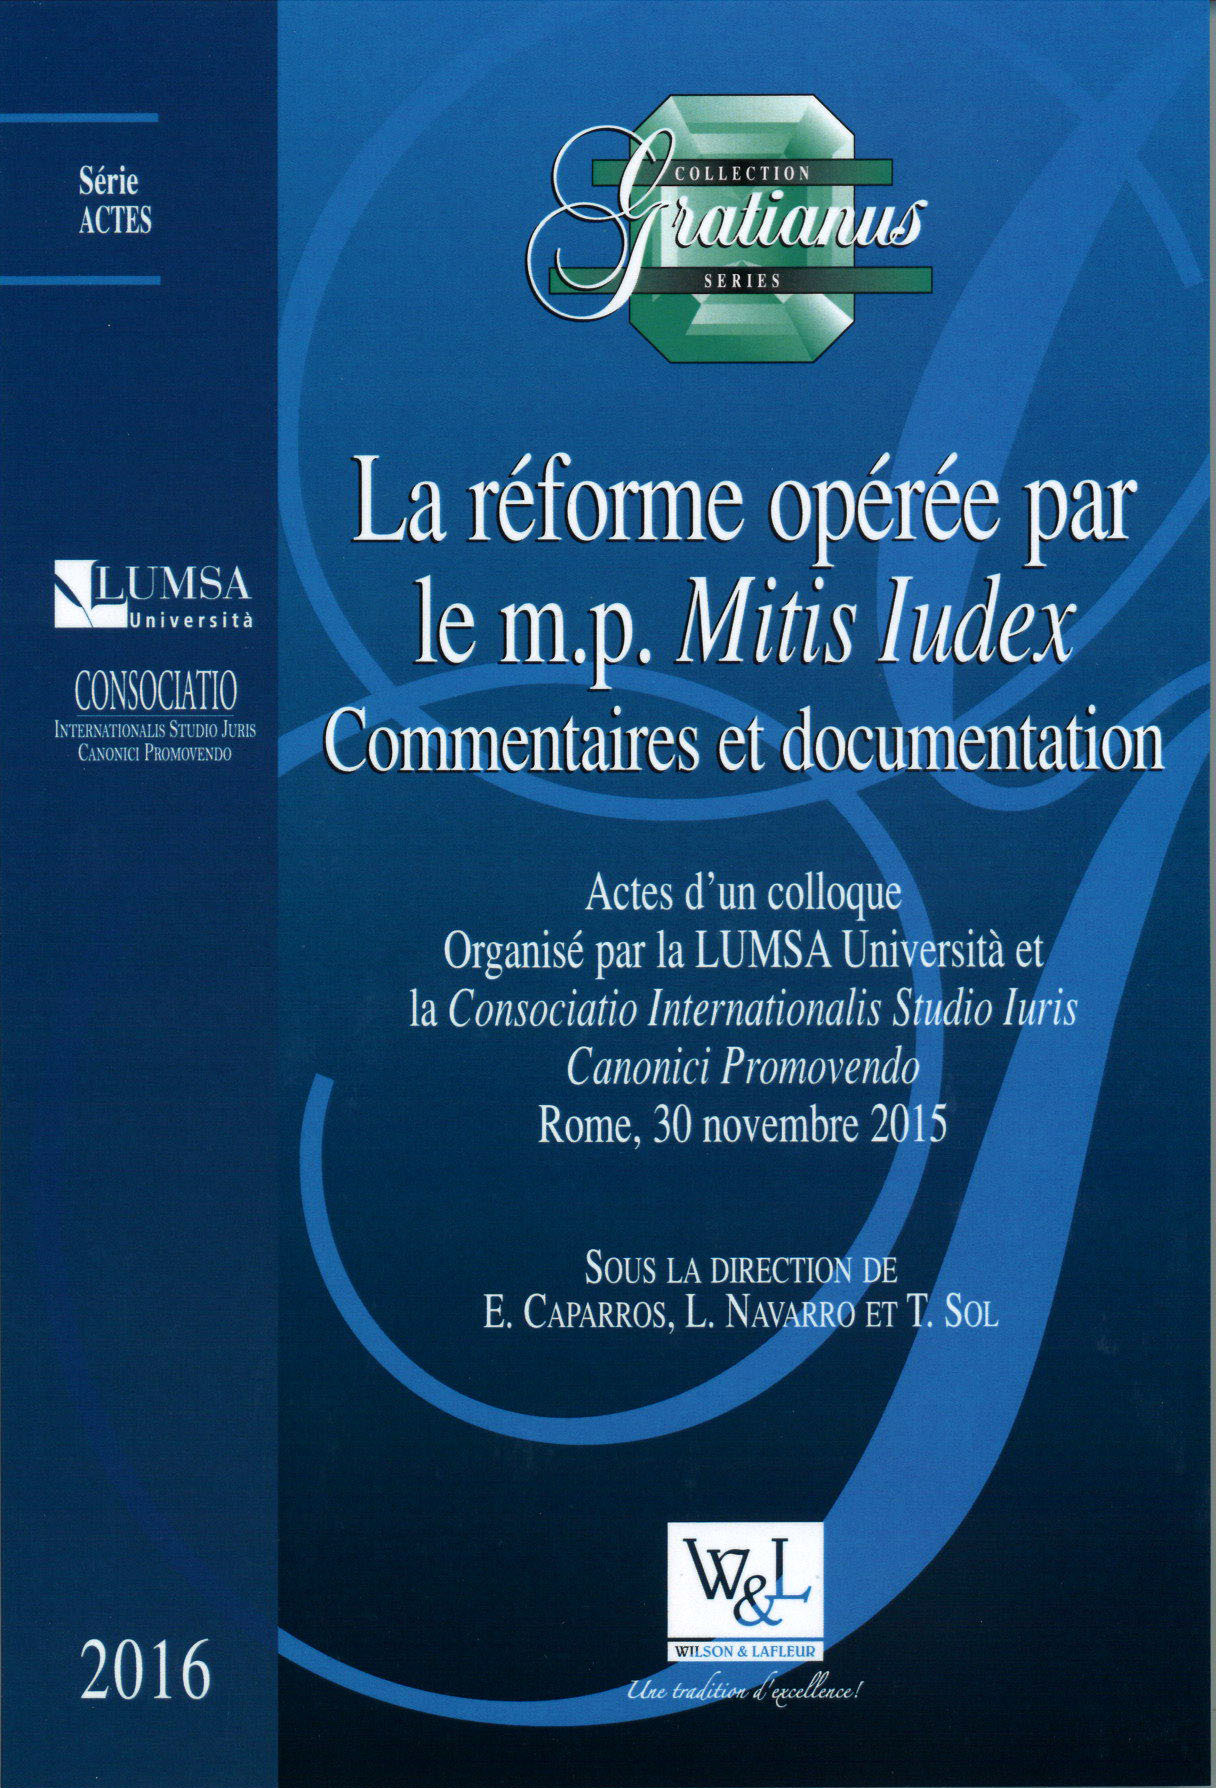 LA REFORME OPEREE PAR LE M.P. MITIS IUDEX. COMMENTAIRES ET DOCUMENTATION